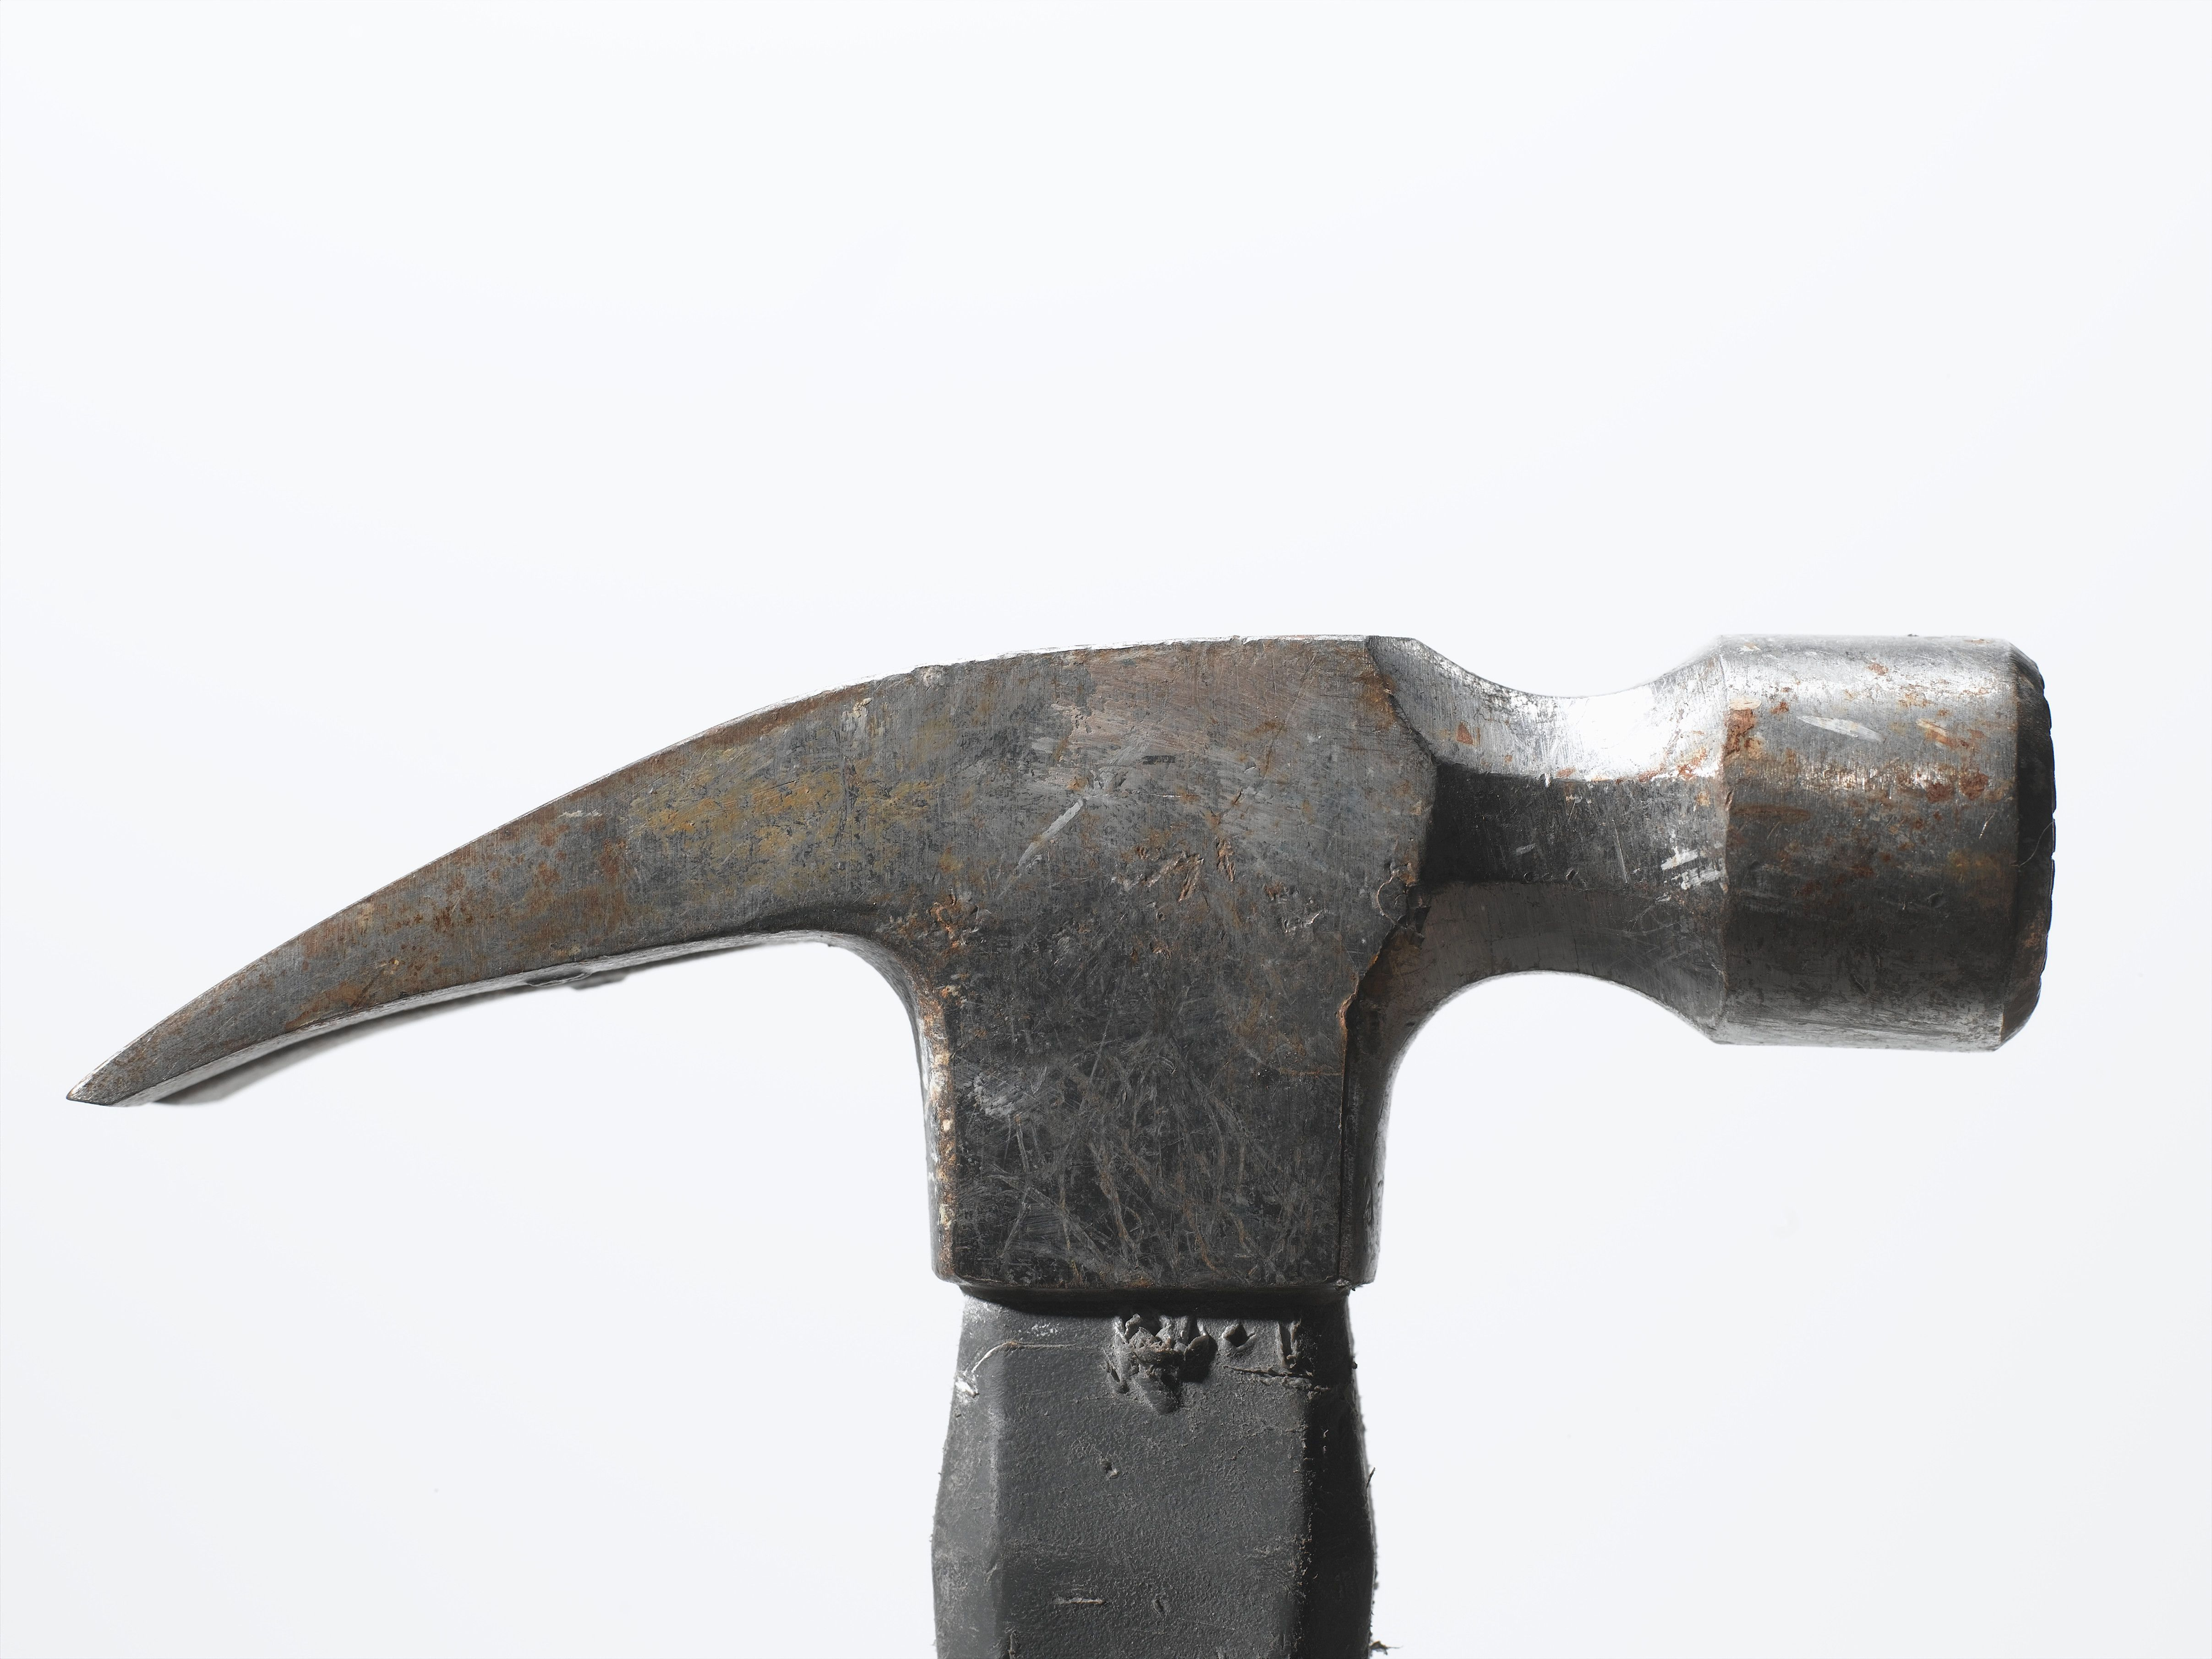 The 9 Most Common Misconceptions About Hammers The ball peen hammer was made for use in striking and shaping metal materials. popular mechanics